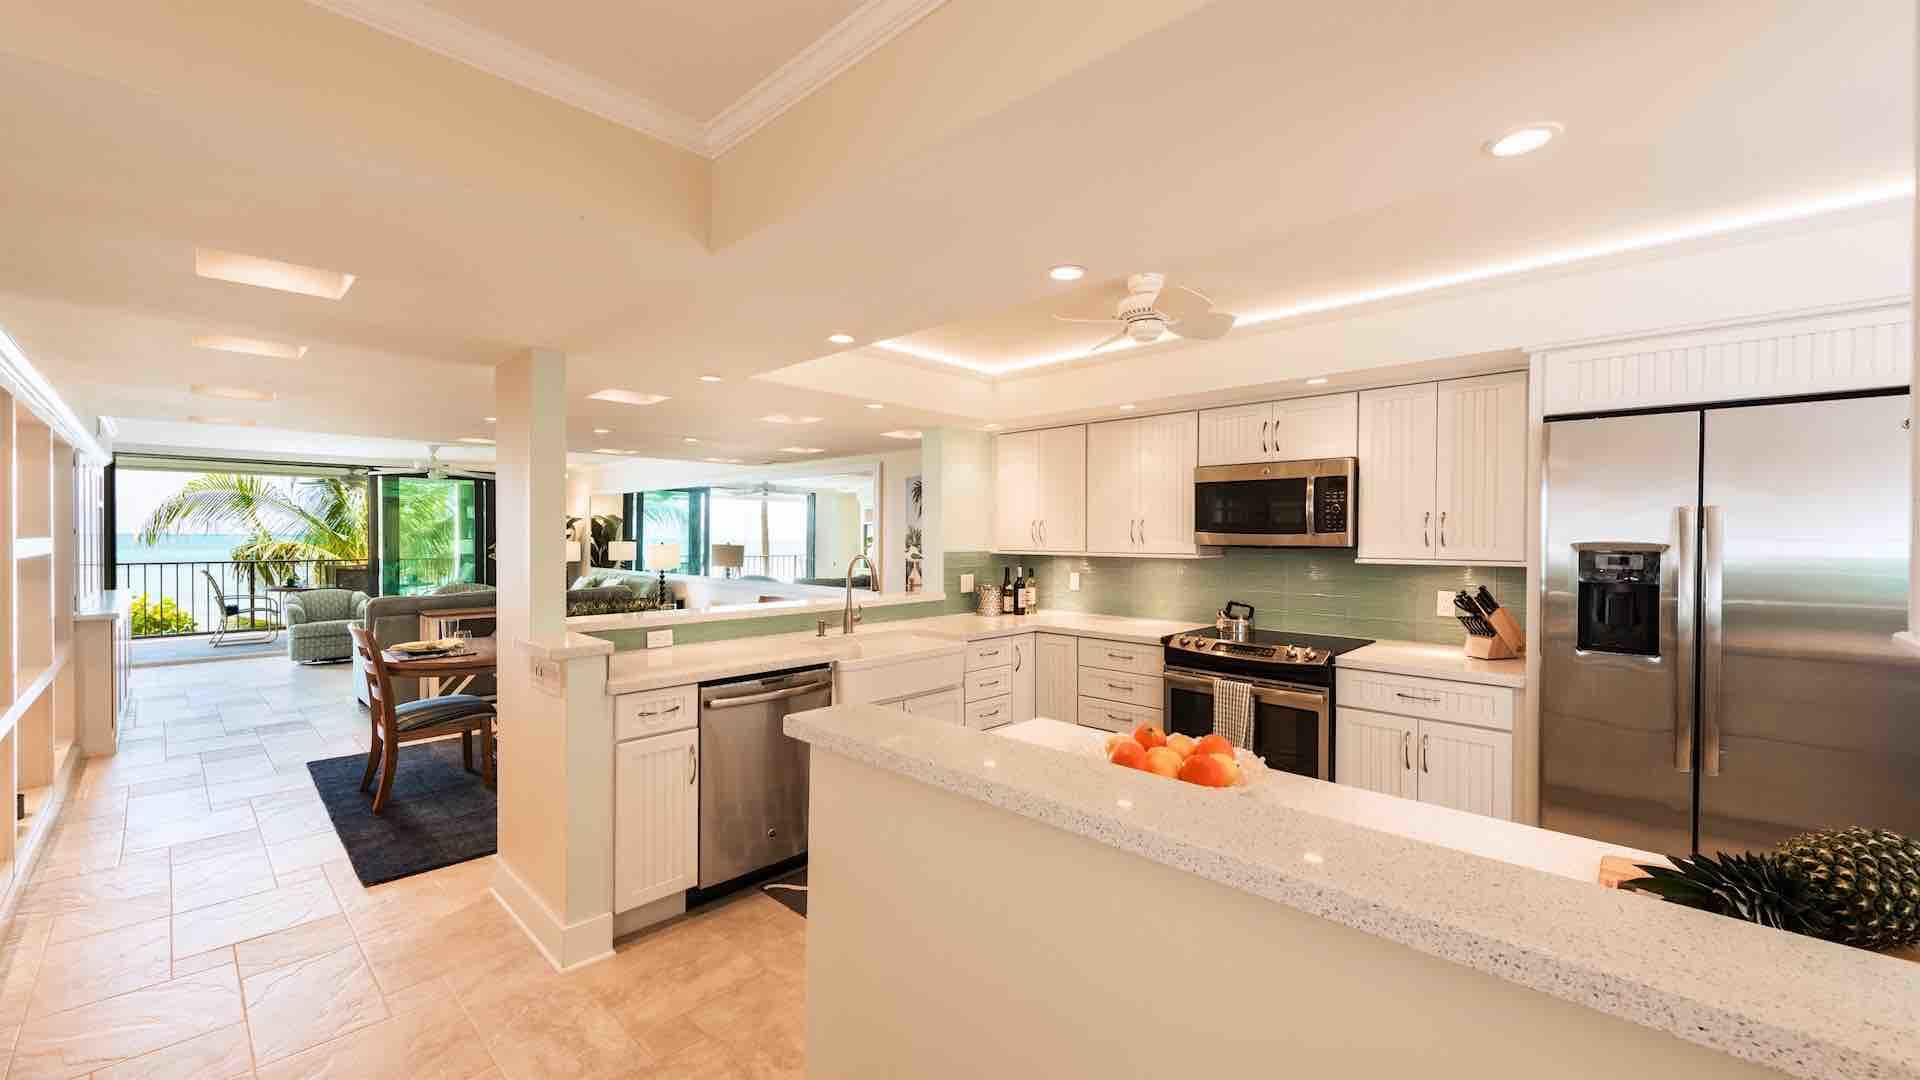 This beautifully renovated kitchen has brand new stainless steel appliances...